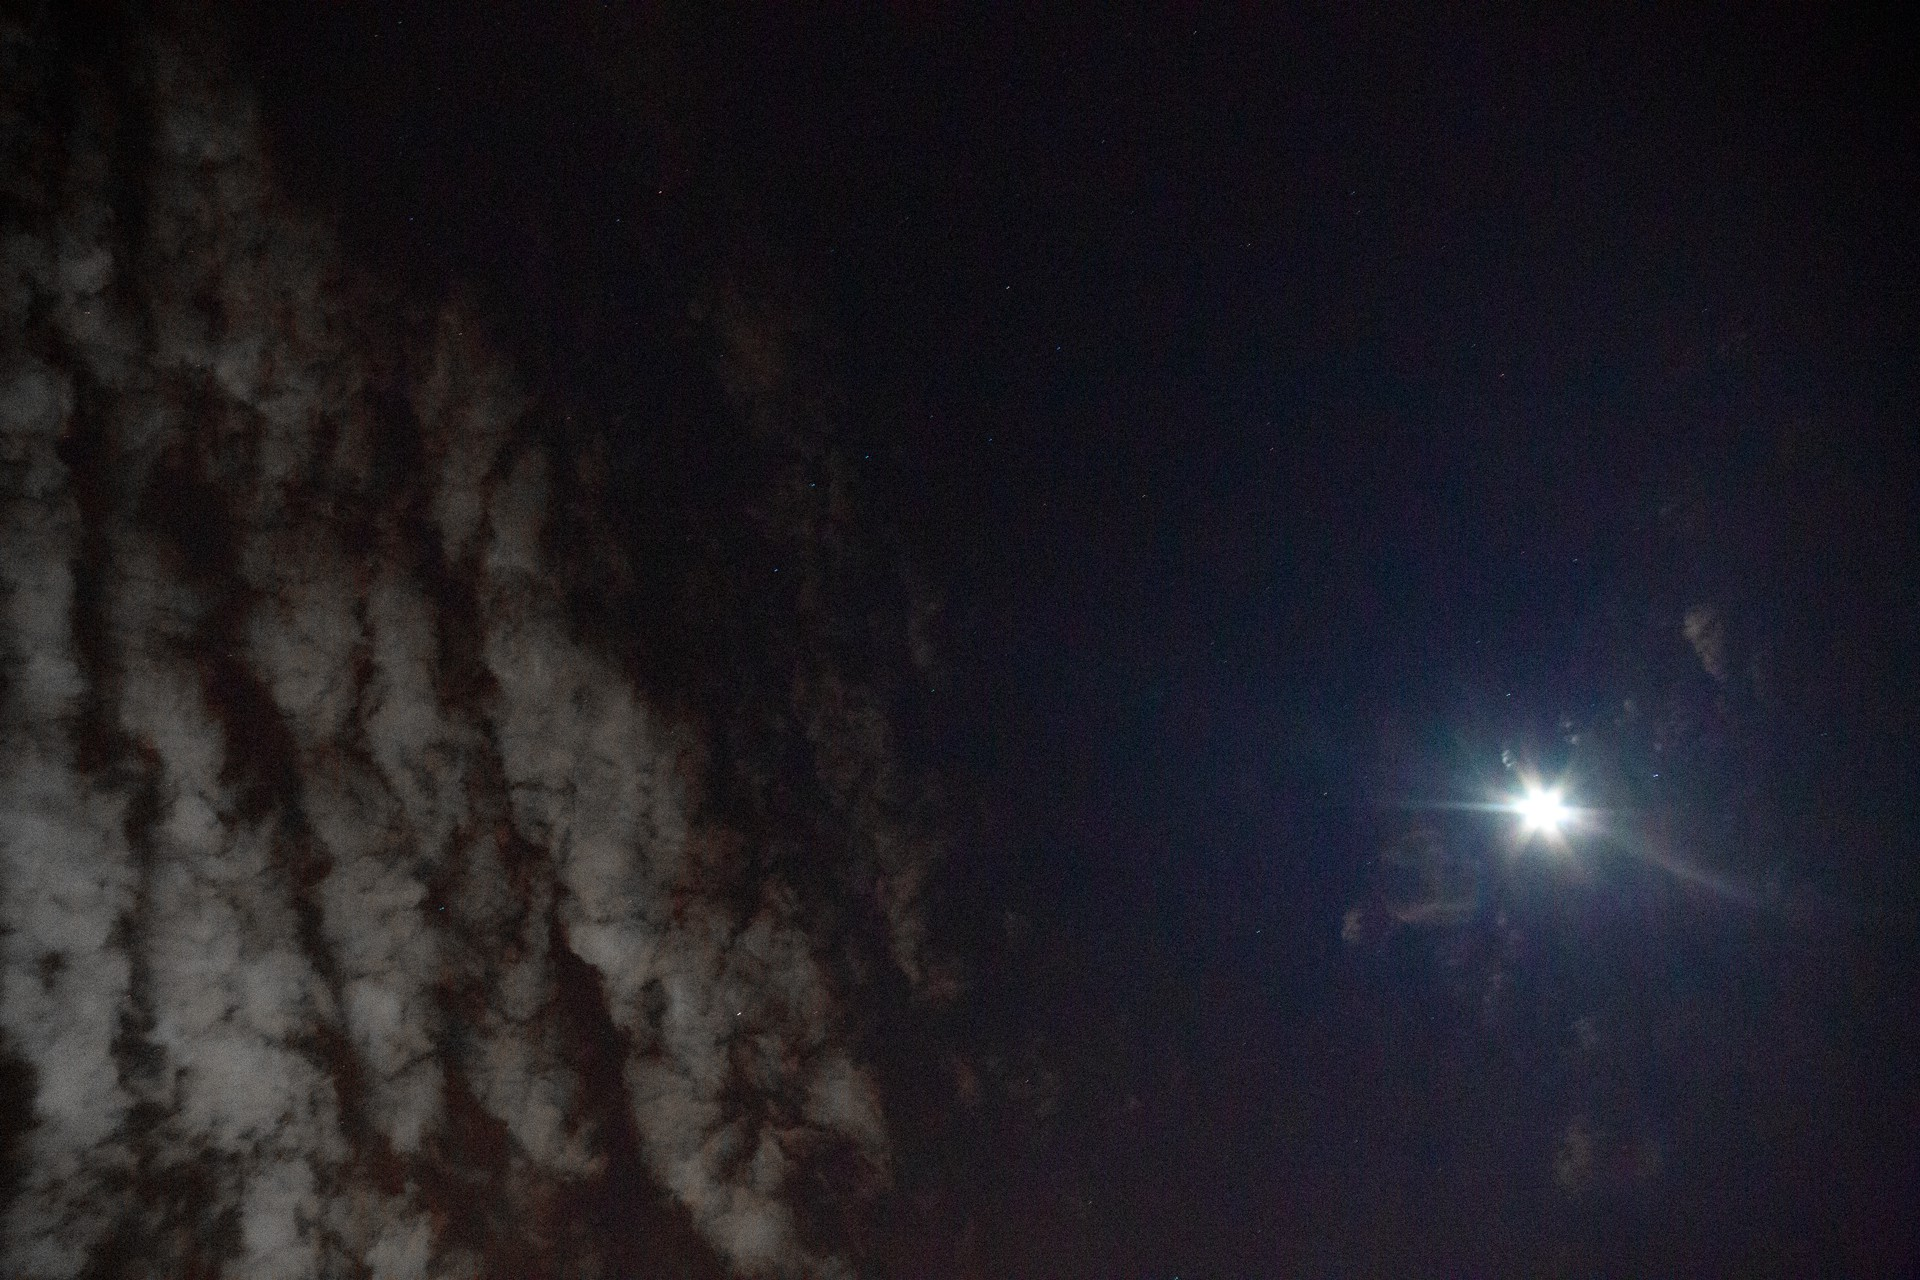 Photo of the moon in the night sky with clouds passing by the far left side. Photo by Matt Cannon, Taken April 4th, 2020